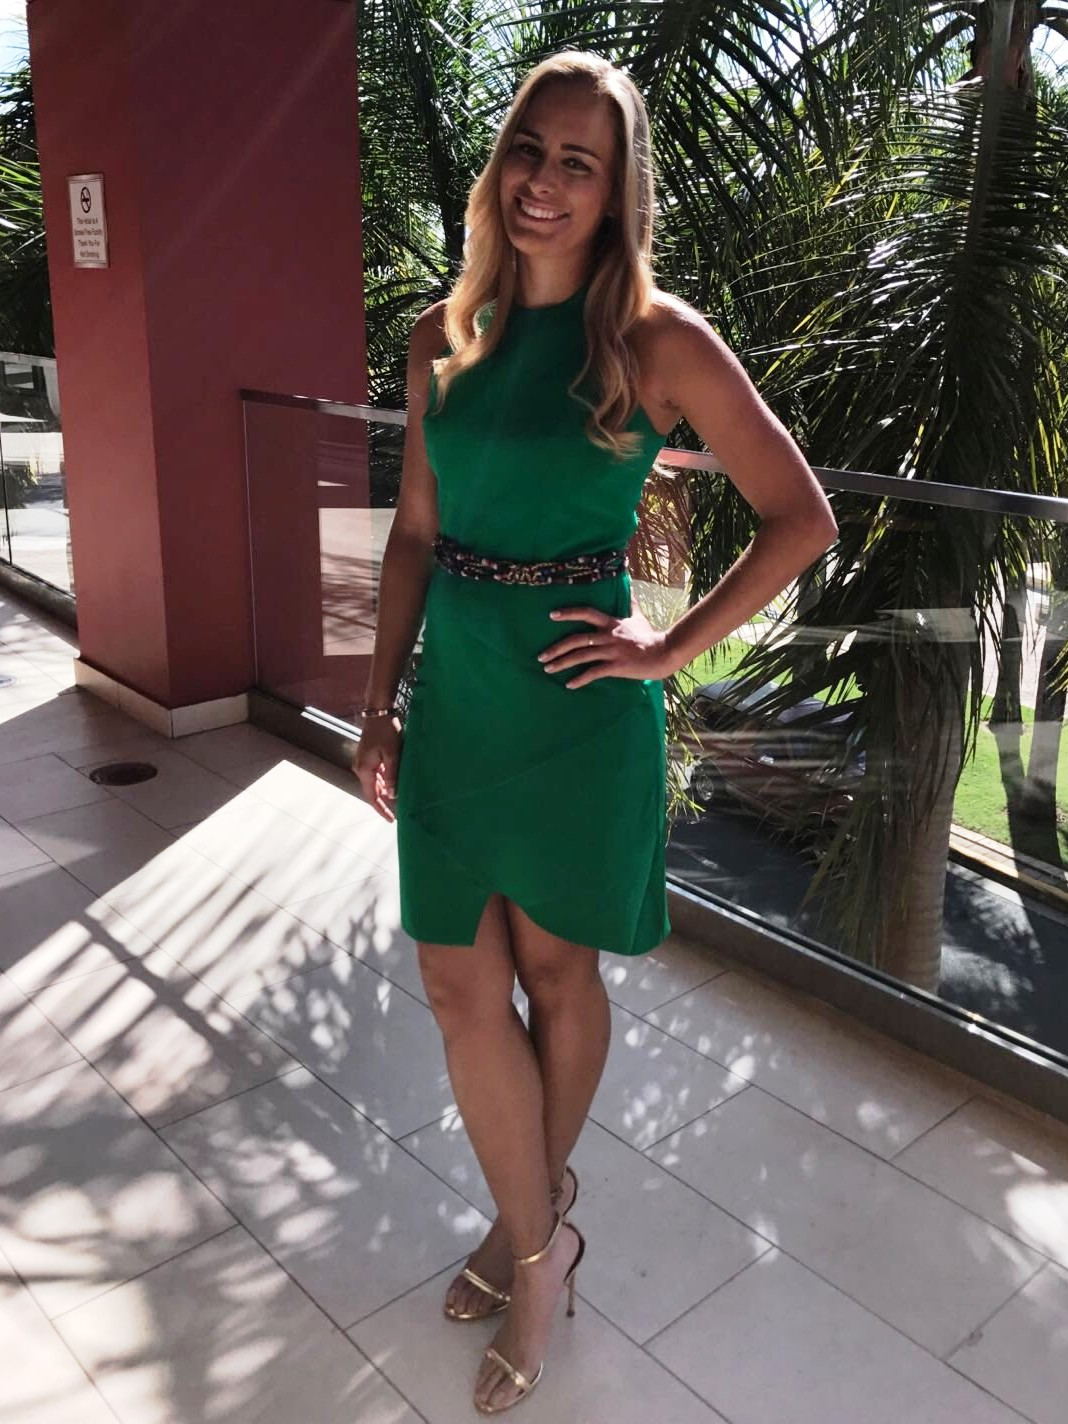 puerto grether mature women personals Happier abroad forum community  in my life puerto rican women are good women  also from my dating experience here in puerto rico the women tend to be psychos .